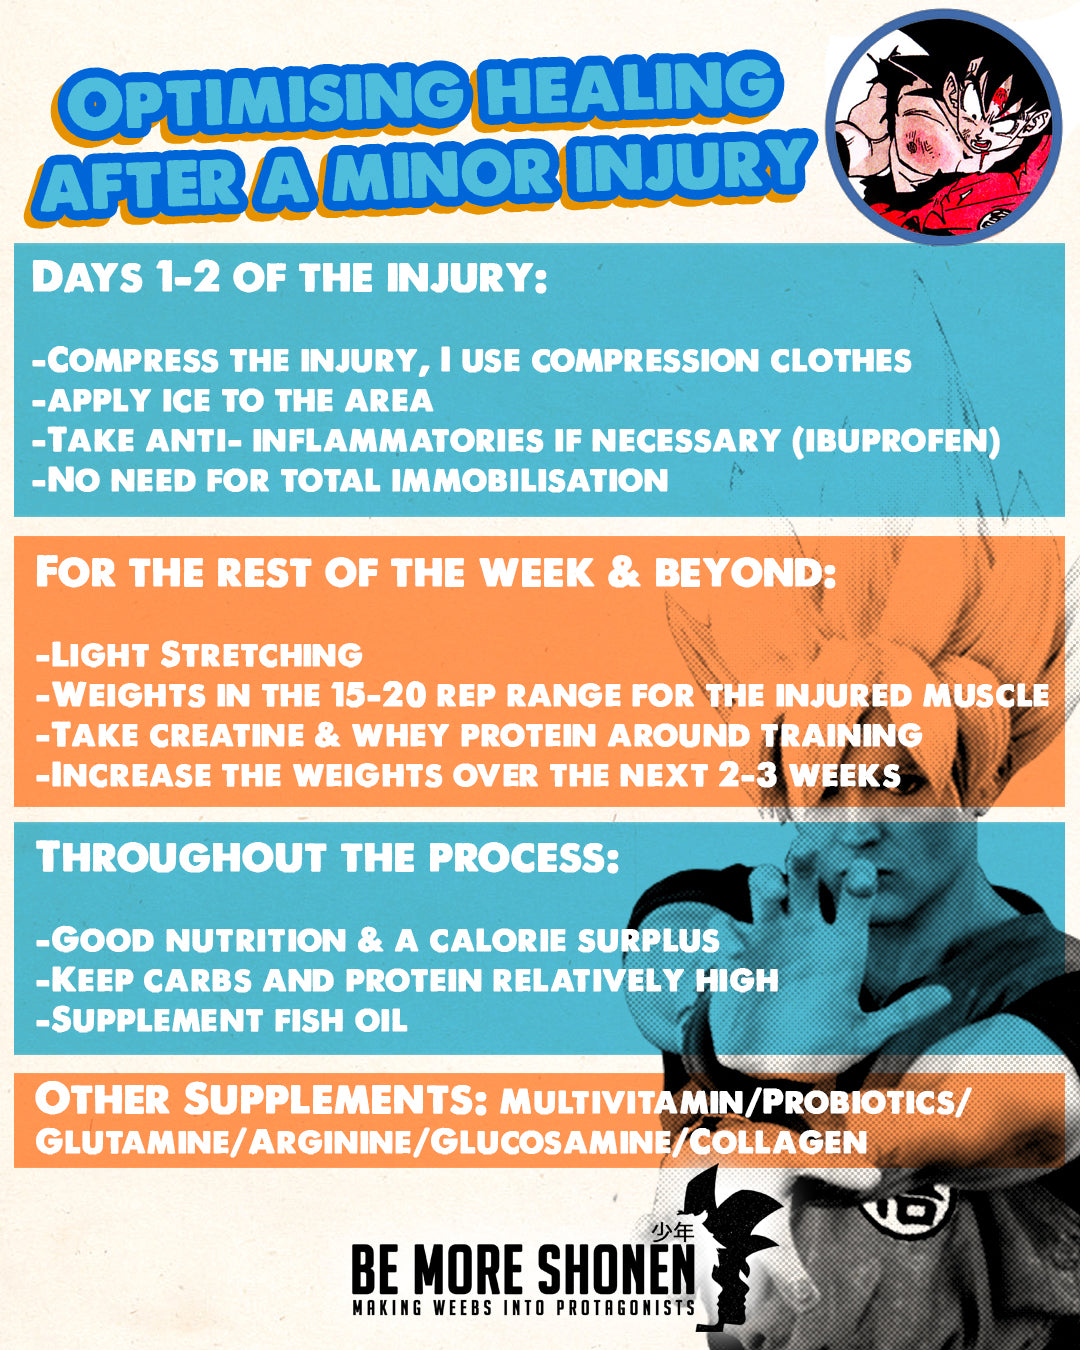 Optimising Healing After An Injury: An Anime Inspired Infographic For The Real Life Senzu Beans